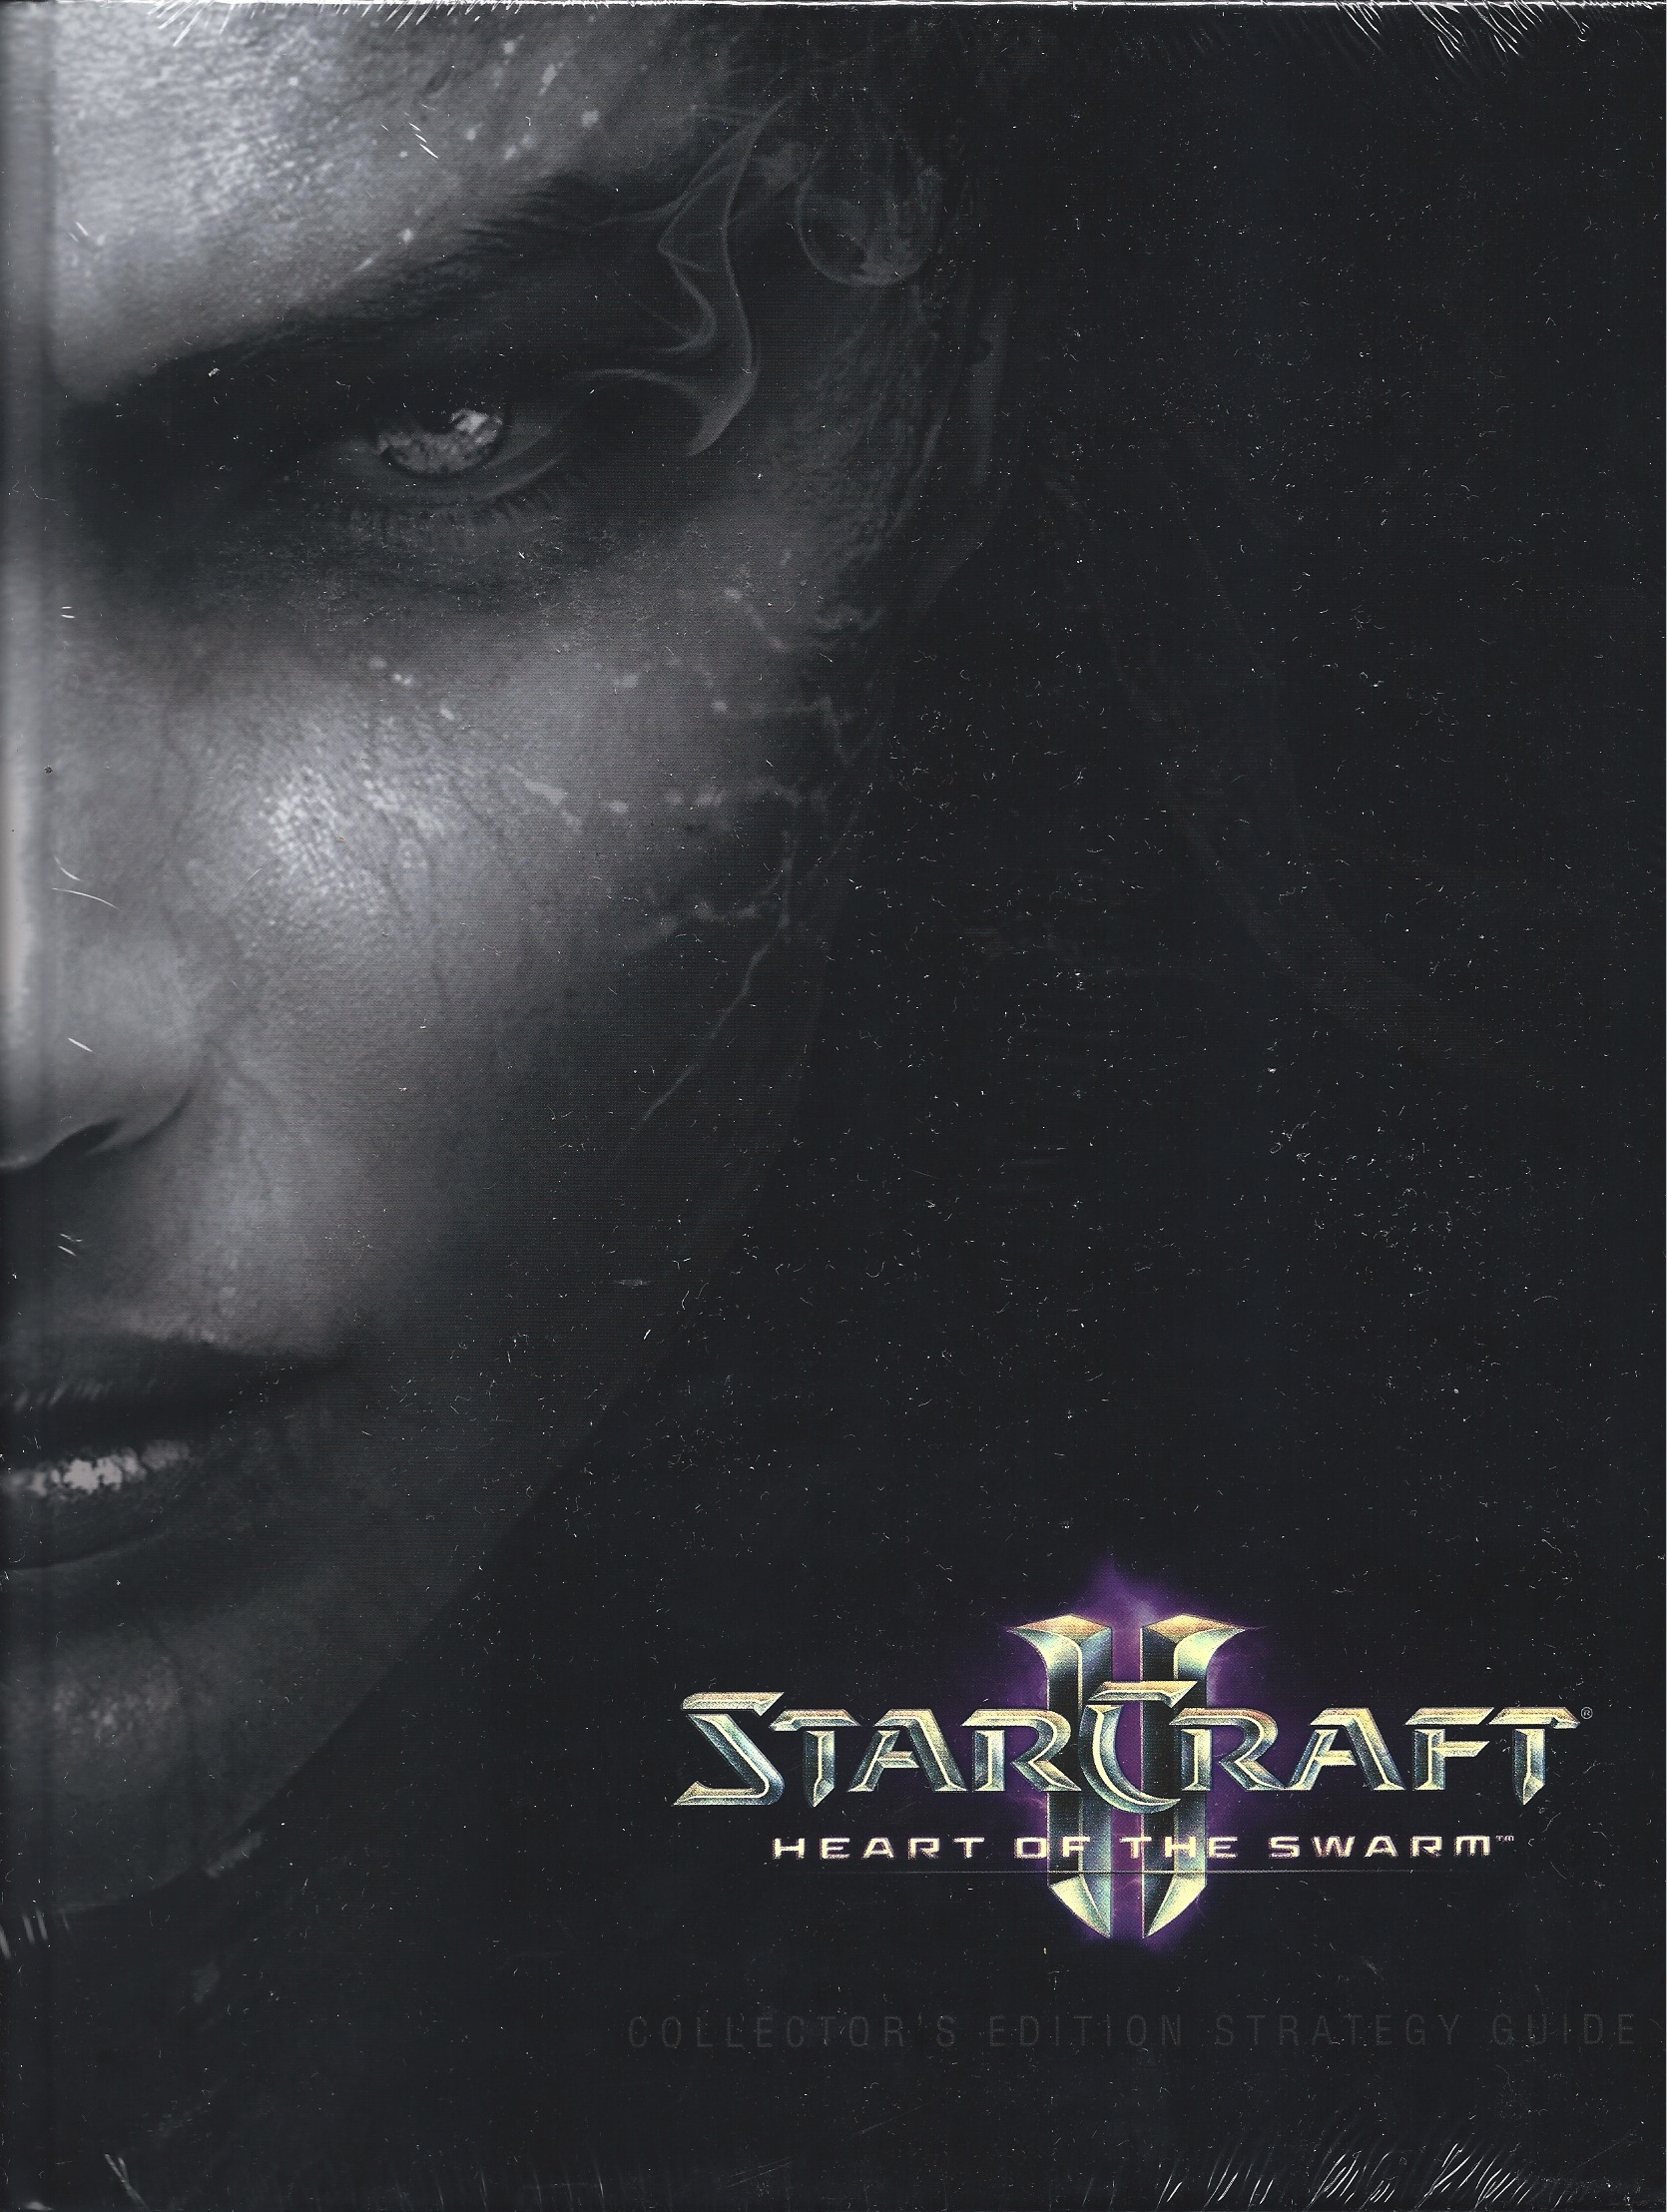 Star Craft II: Heart of the Swarm strategy guide